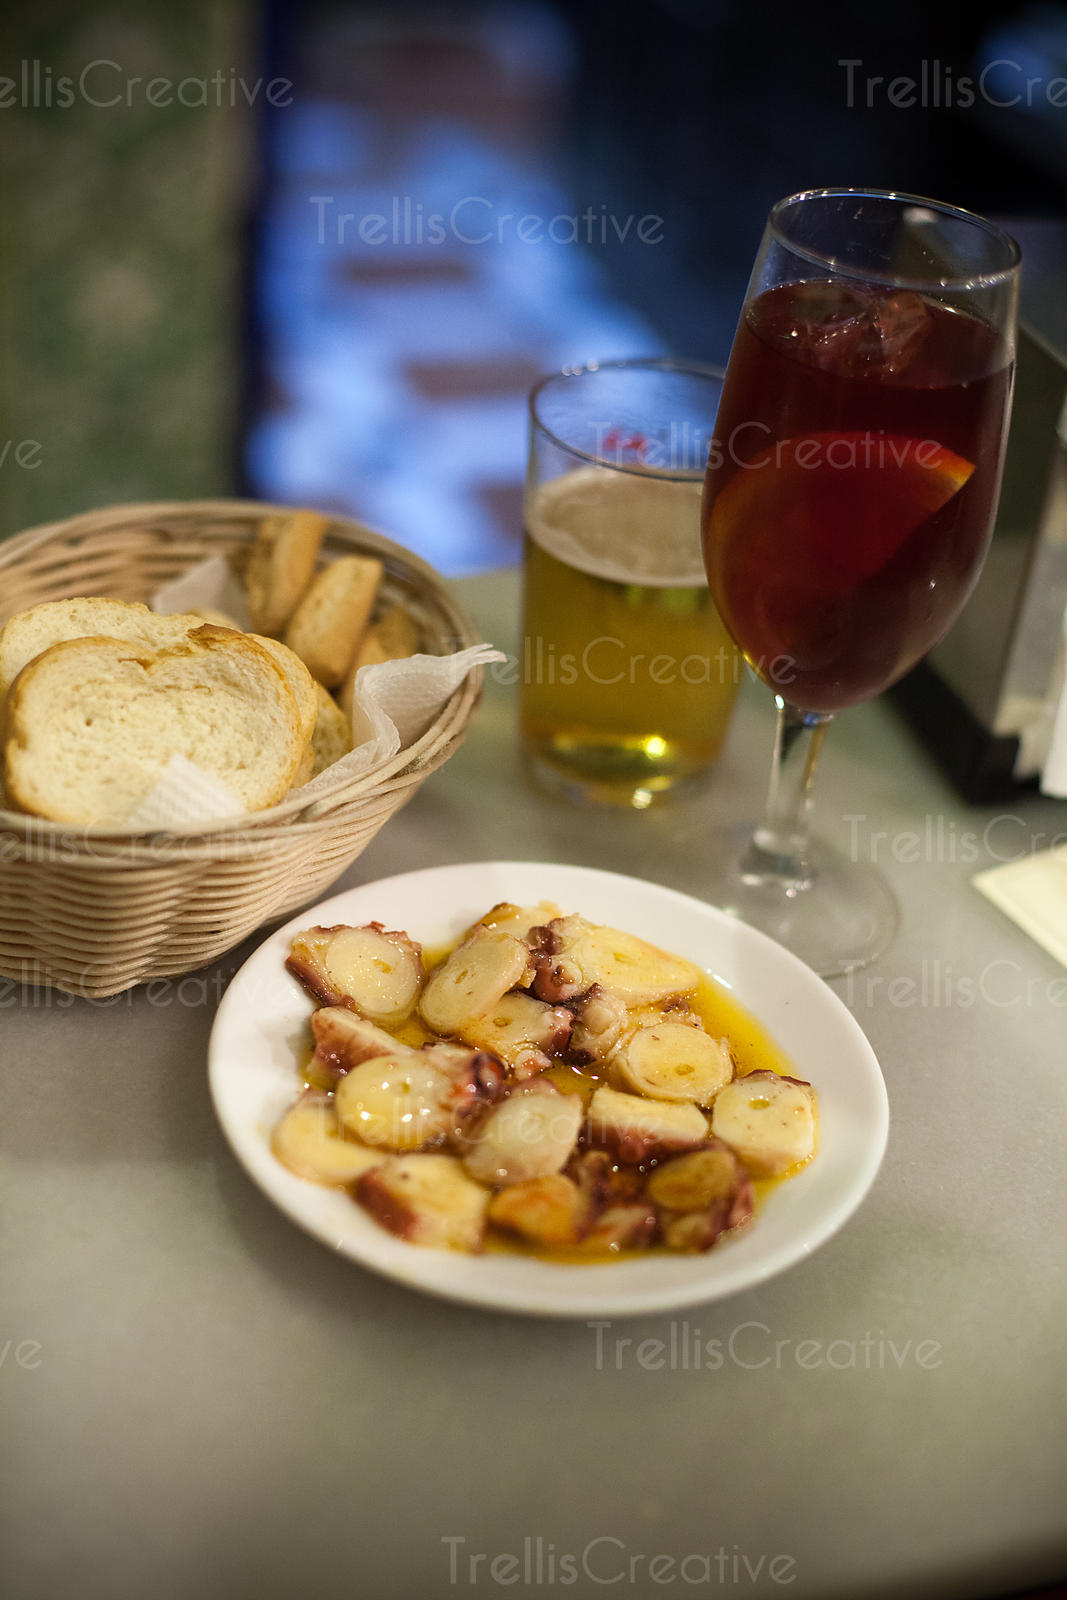 Spanish tapa of octopus with red wine in glass on table